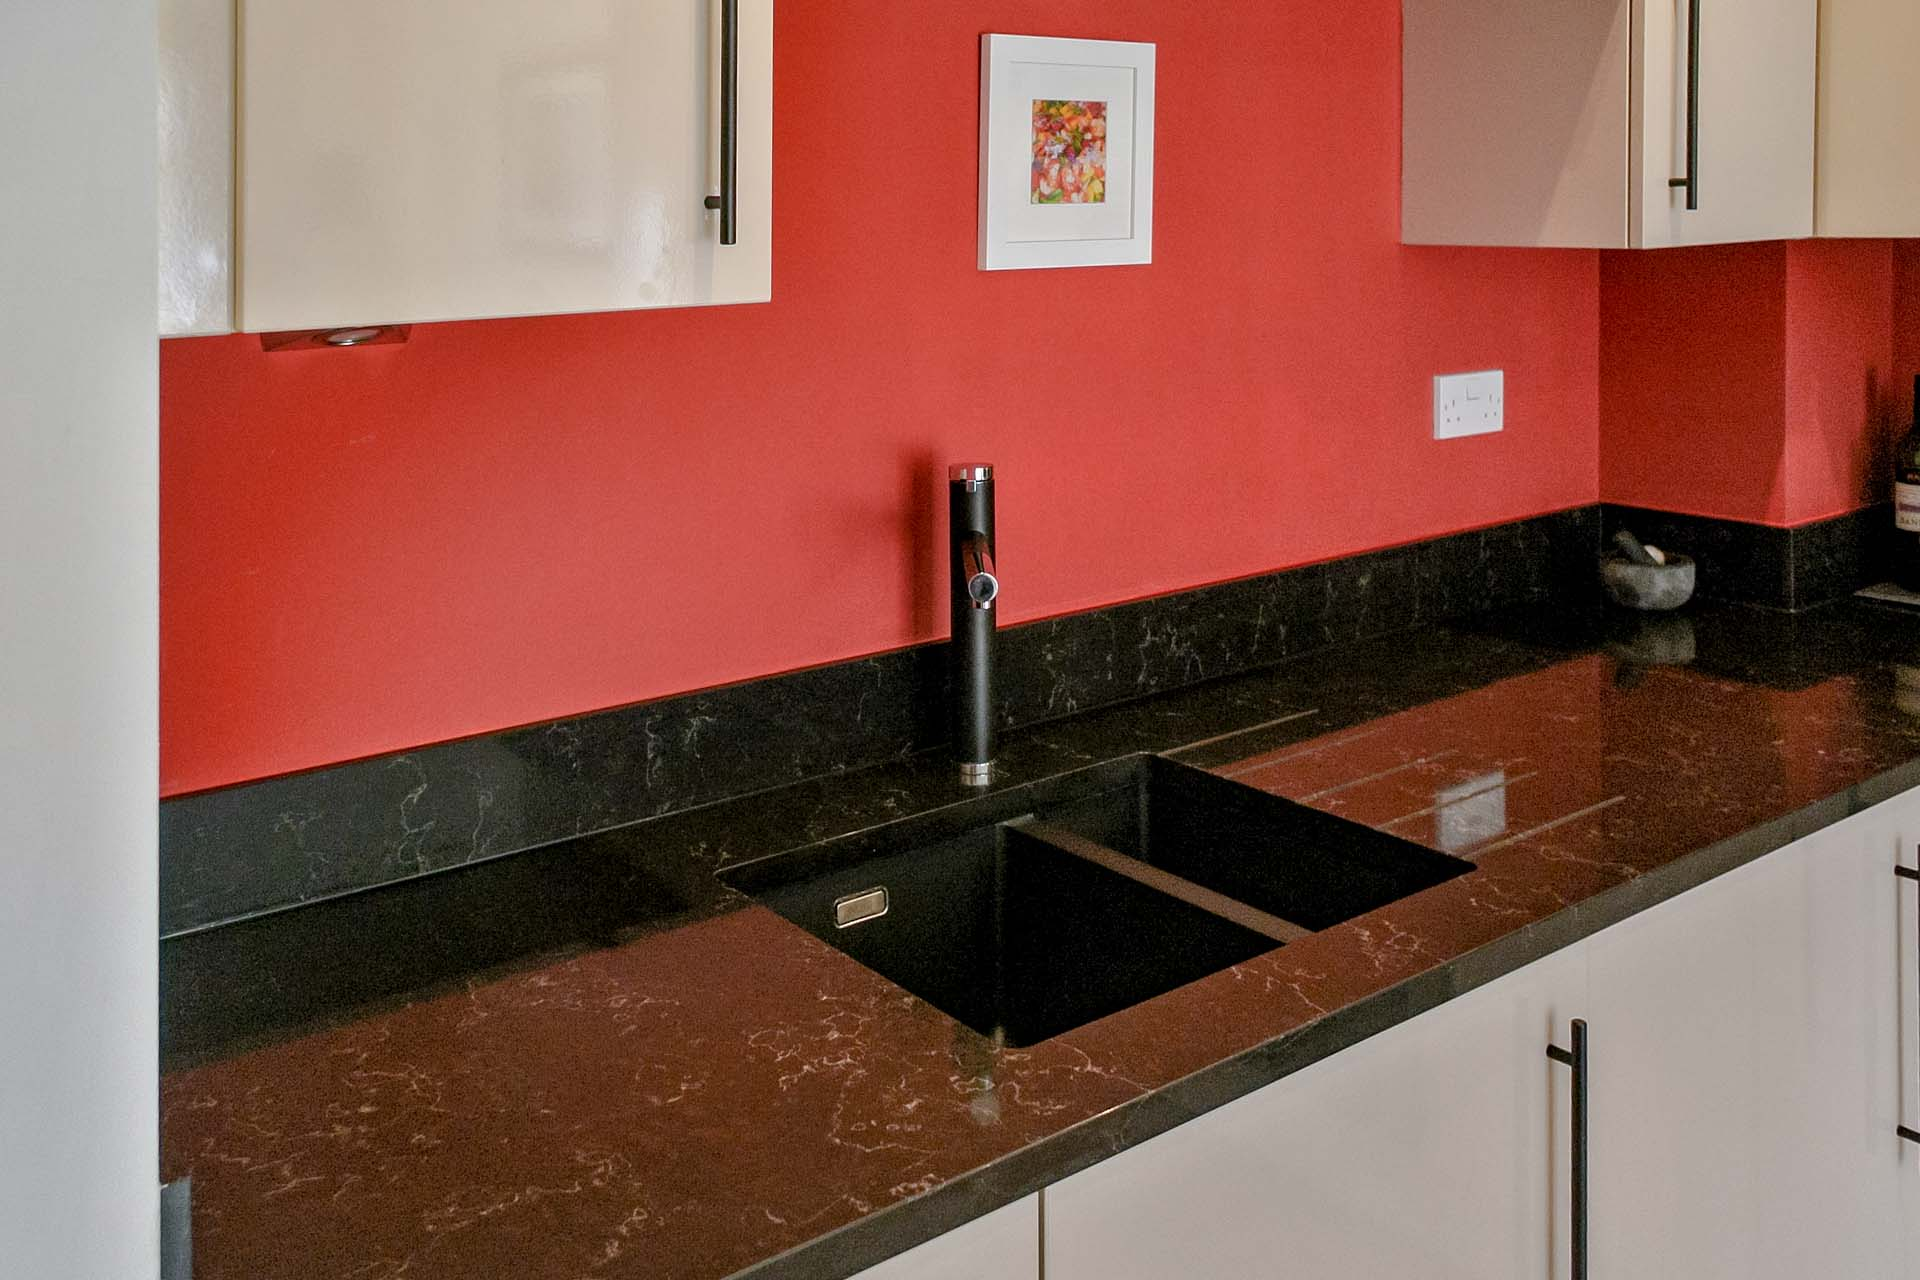 Unistone Java Black Noir Quartz Worktops Surrey Reigate Granite Franke SID160 Tectonite sink 094122